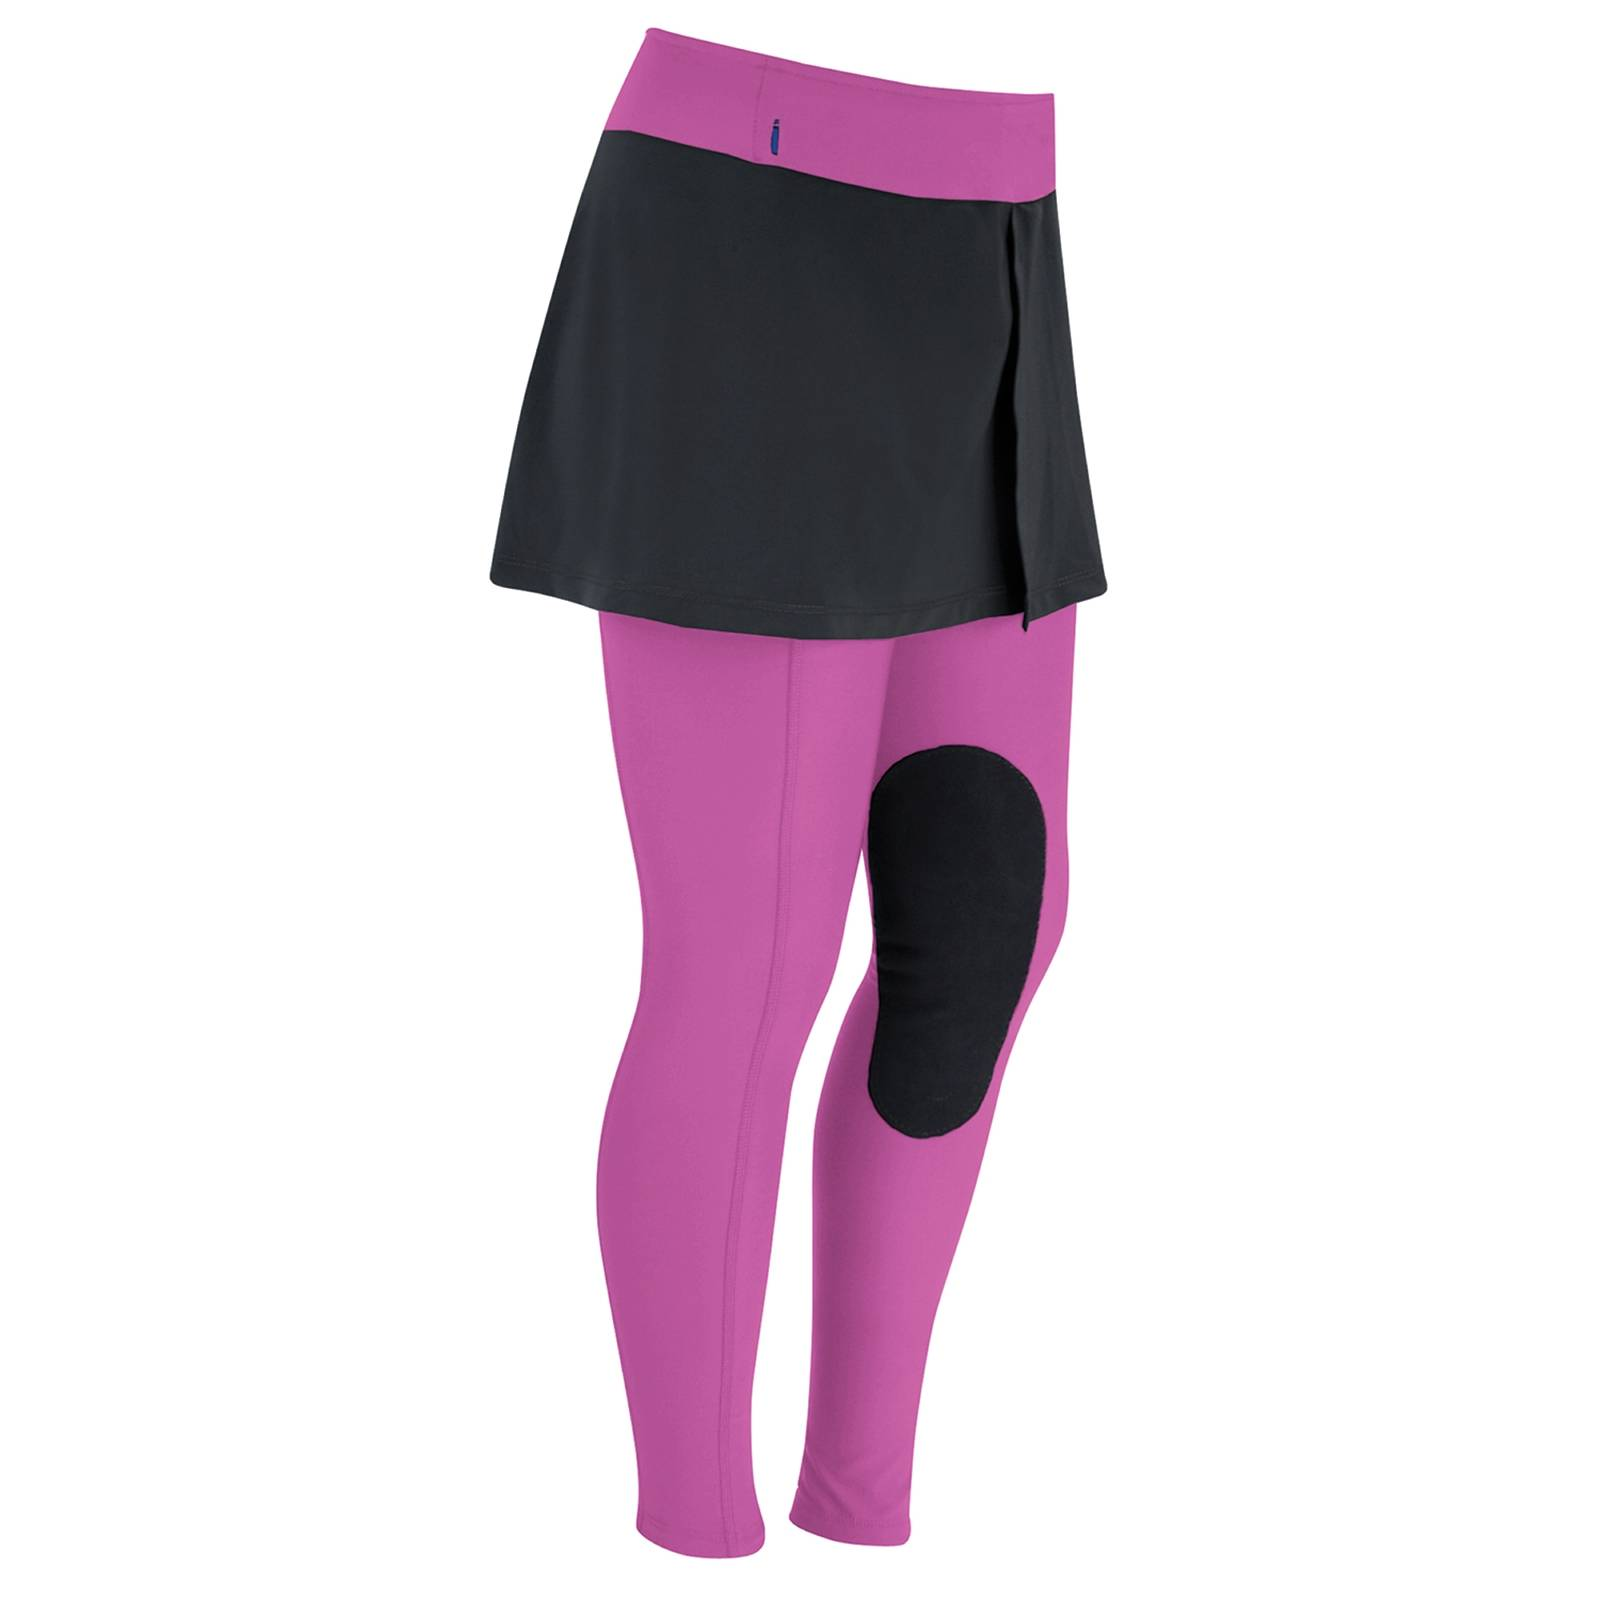 Irideon Kids' Issential Miniature Riding Tights